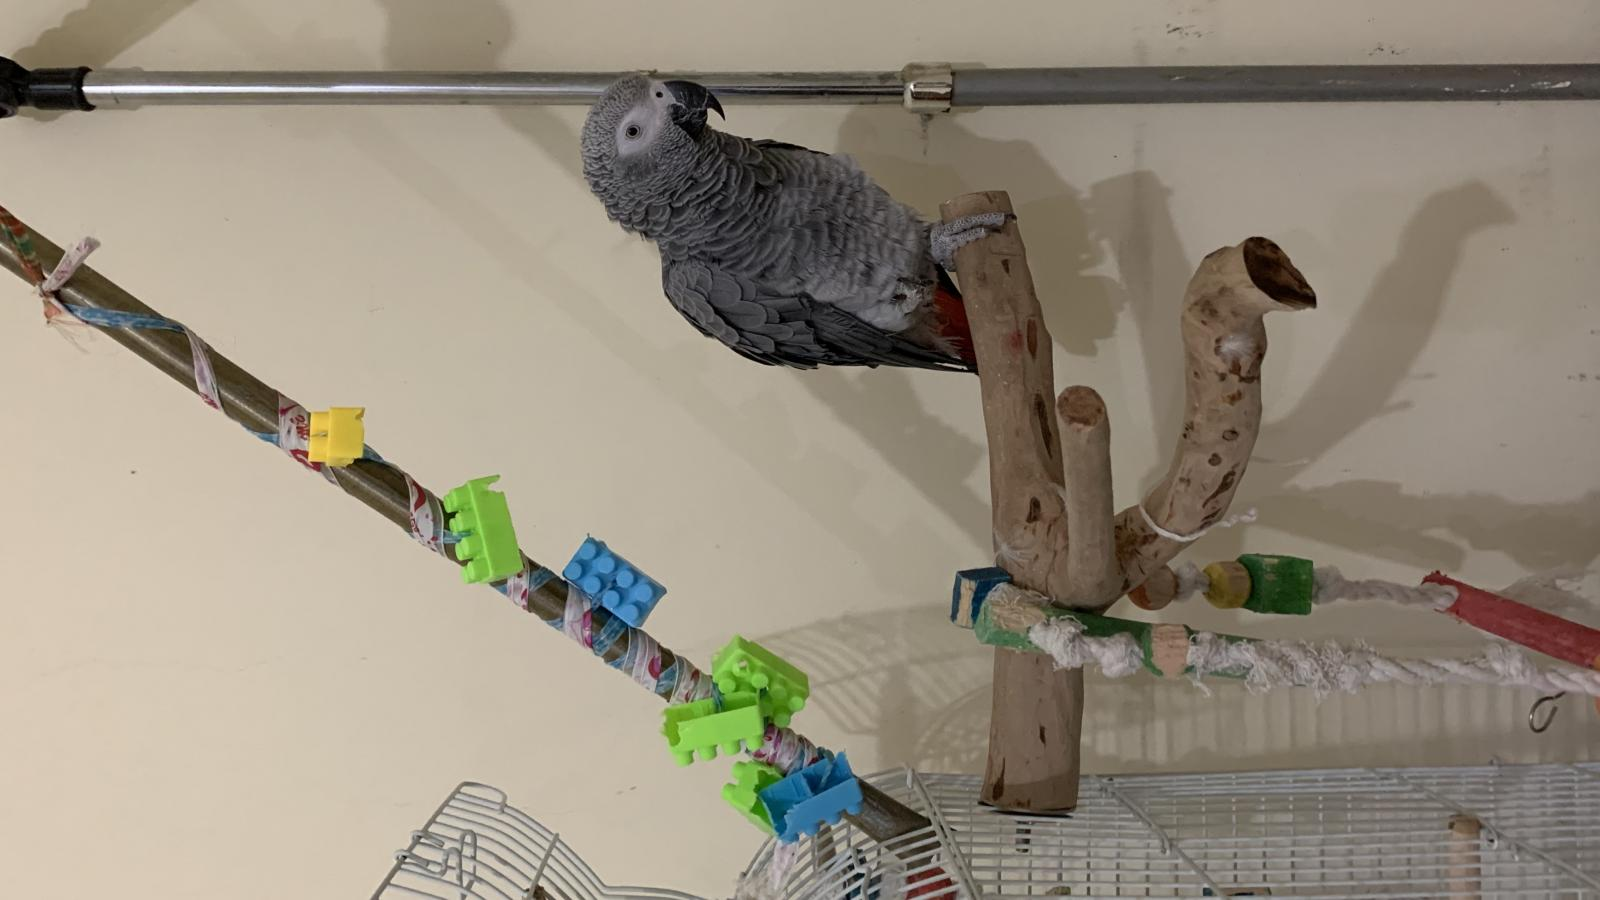 Lost African grey parrot 7:25pm 15 June 2020